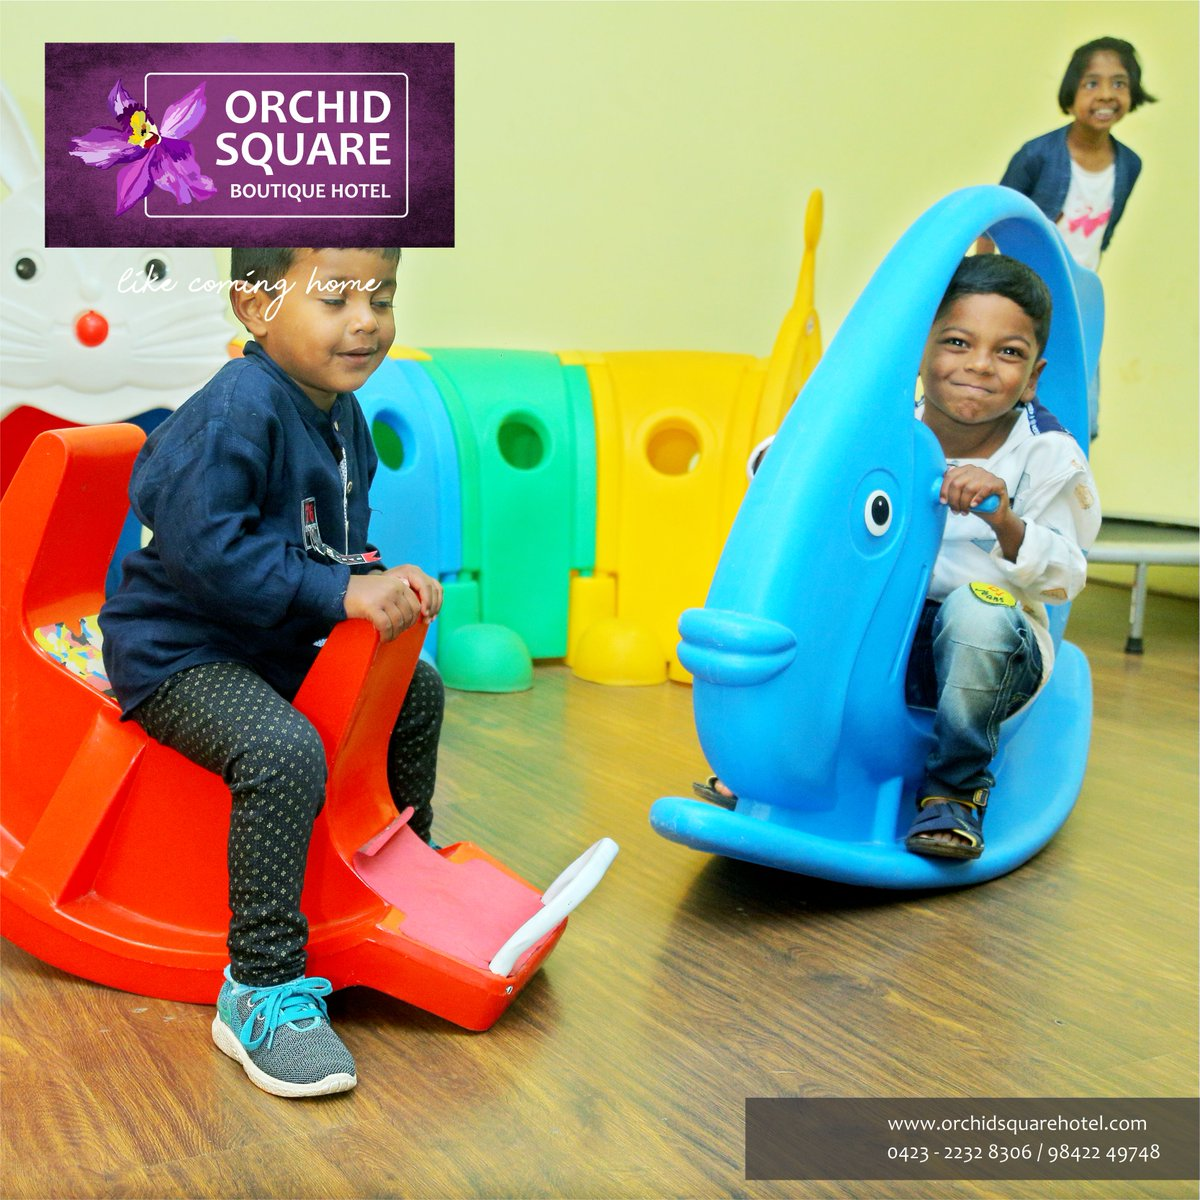 #KidsFriendly!! Kids too have a #funtime with activities galore to keep them occupied and busy at #OrchidSquare. #Fungames and #toys, #kids can have the times of their lives. While the parents can find some alone time of their own....! Visit: http://www.orchidsquare.inpic.twitter.com/3wlArcngNt